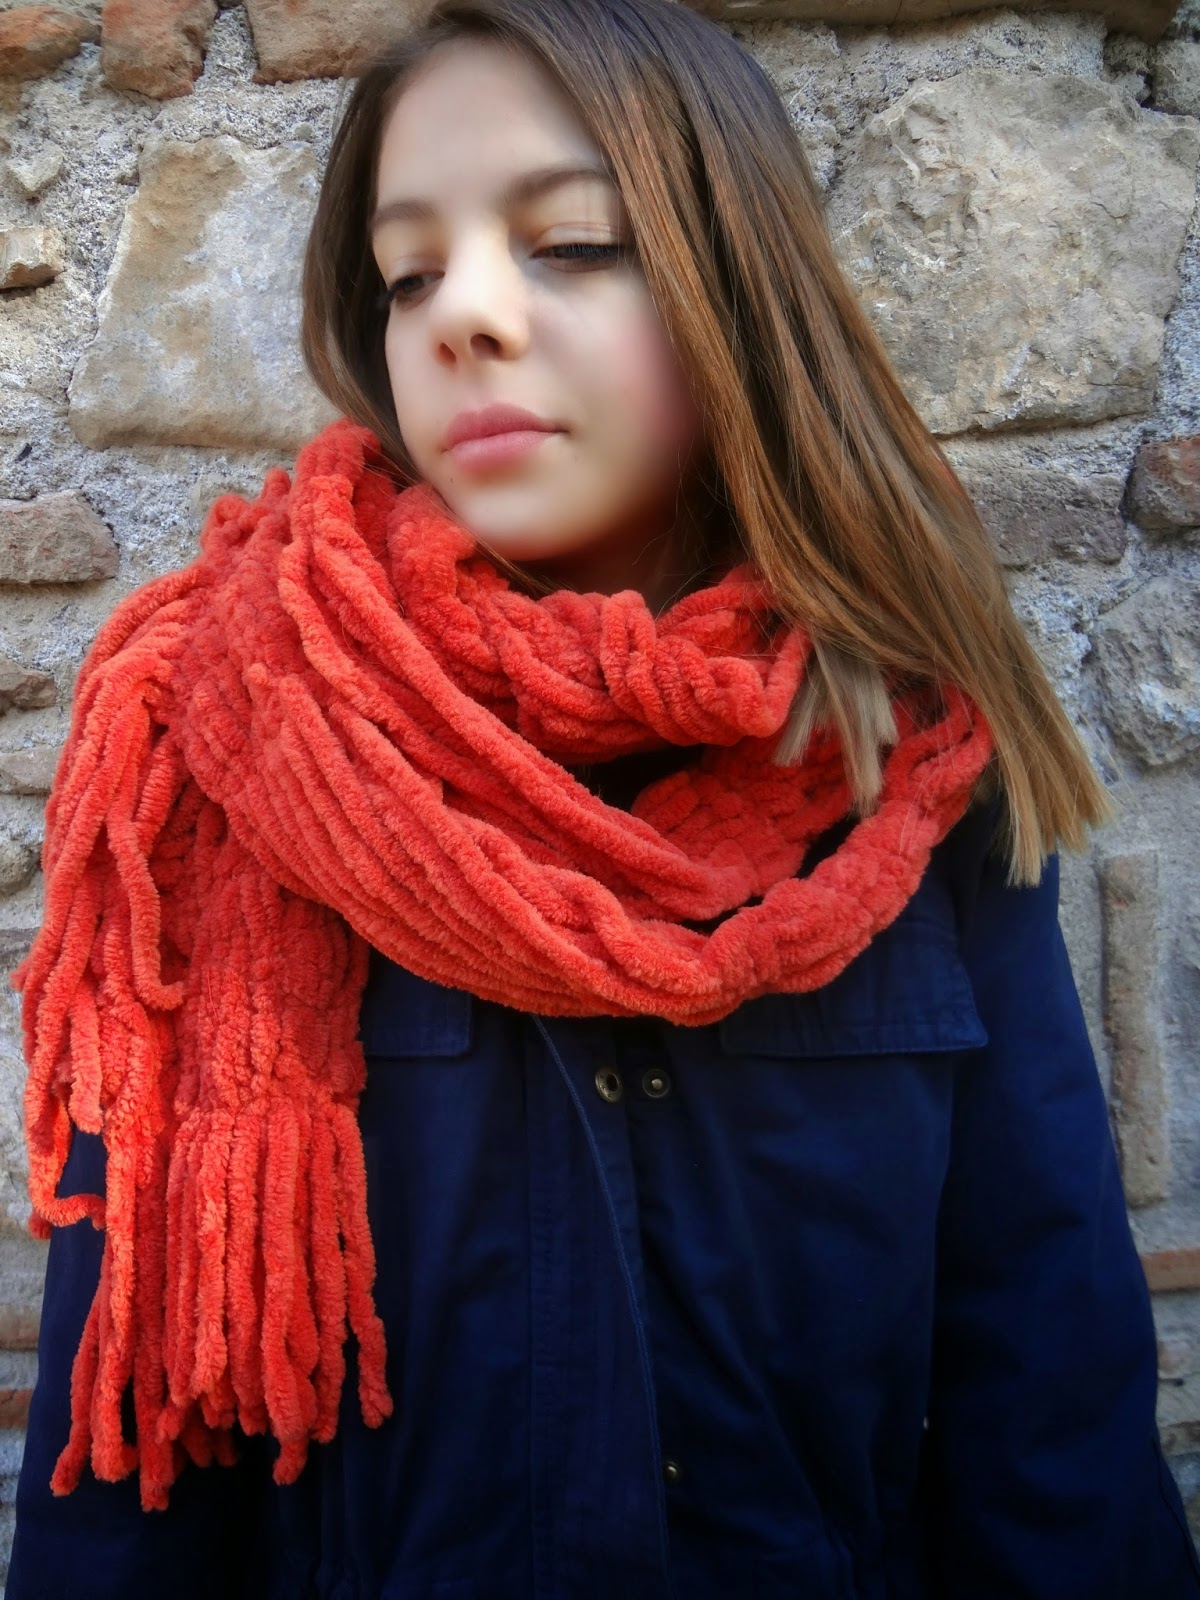 http://thelittletreasures.blogspot.com/2014/11/no-knit-just-sew-drape-scarf-tutorial.html